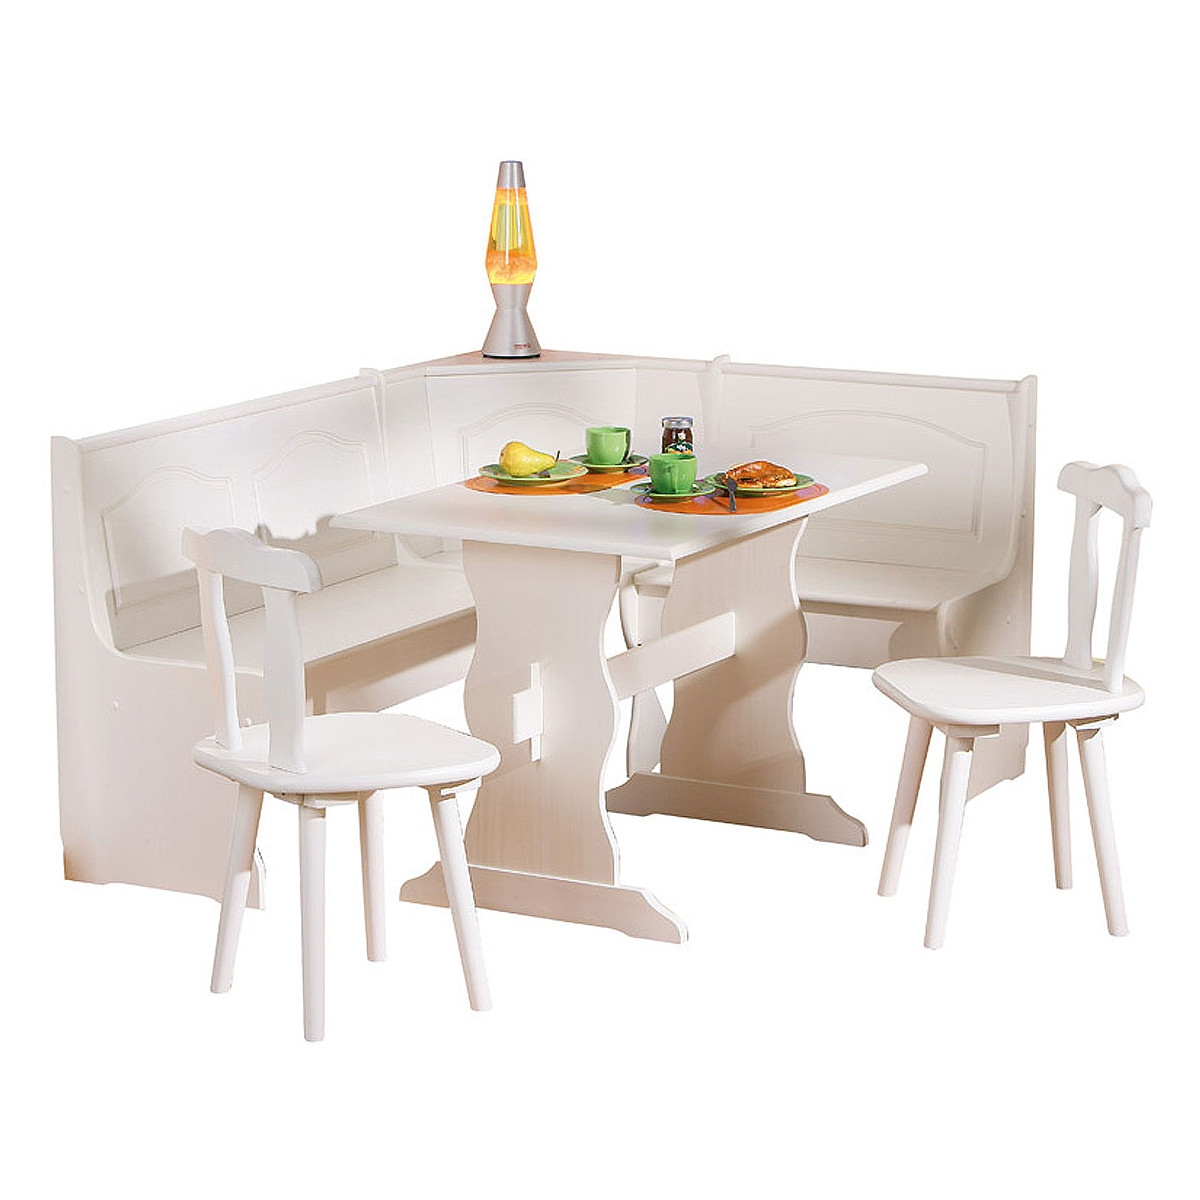 Coin repas blanc pin massif donau for Table d angle cuisine